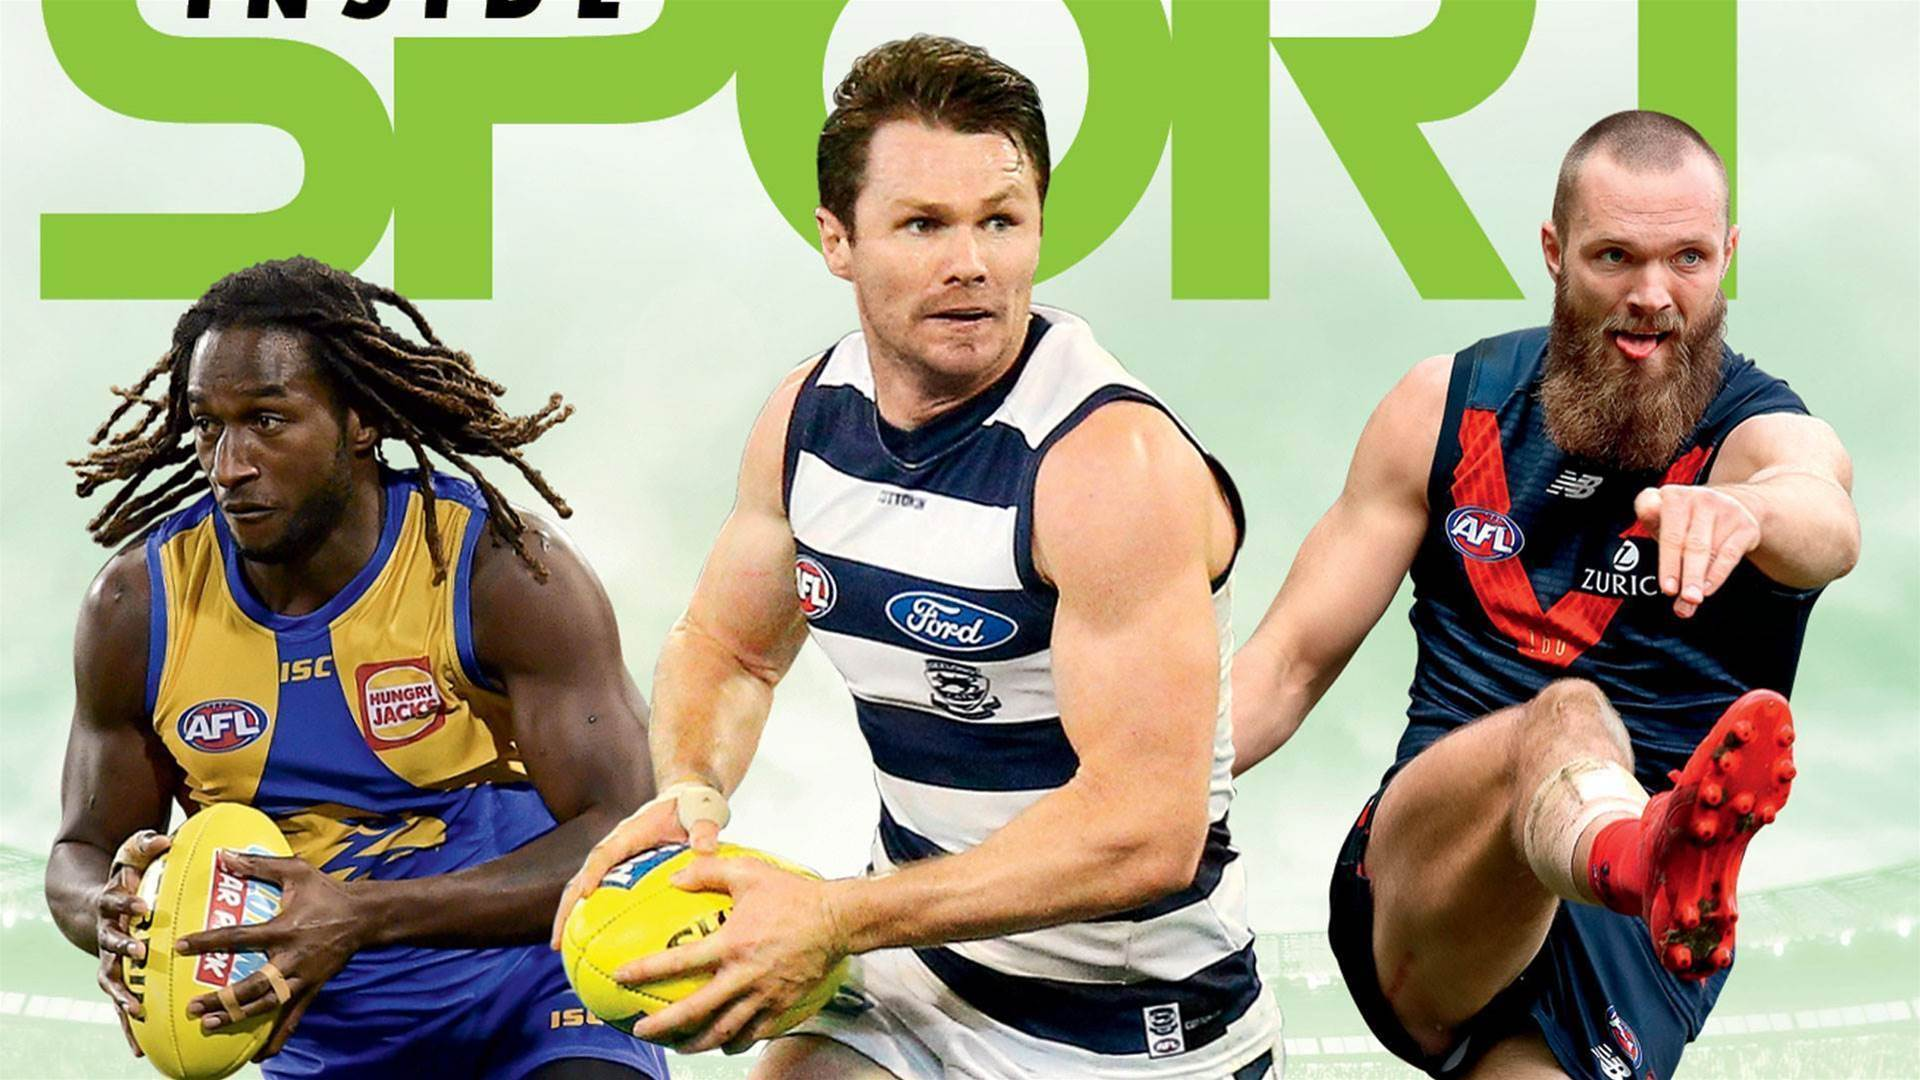 Inside Sport's 2019 AFL season preview edition on sale now